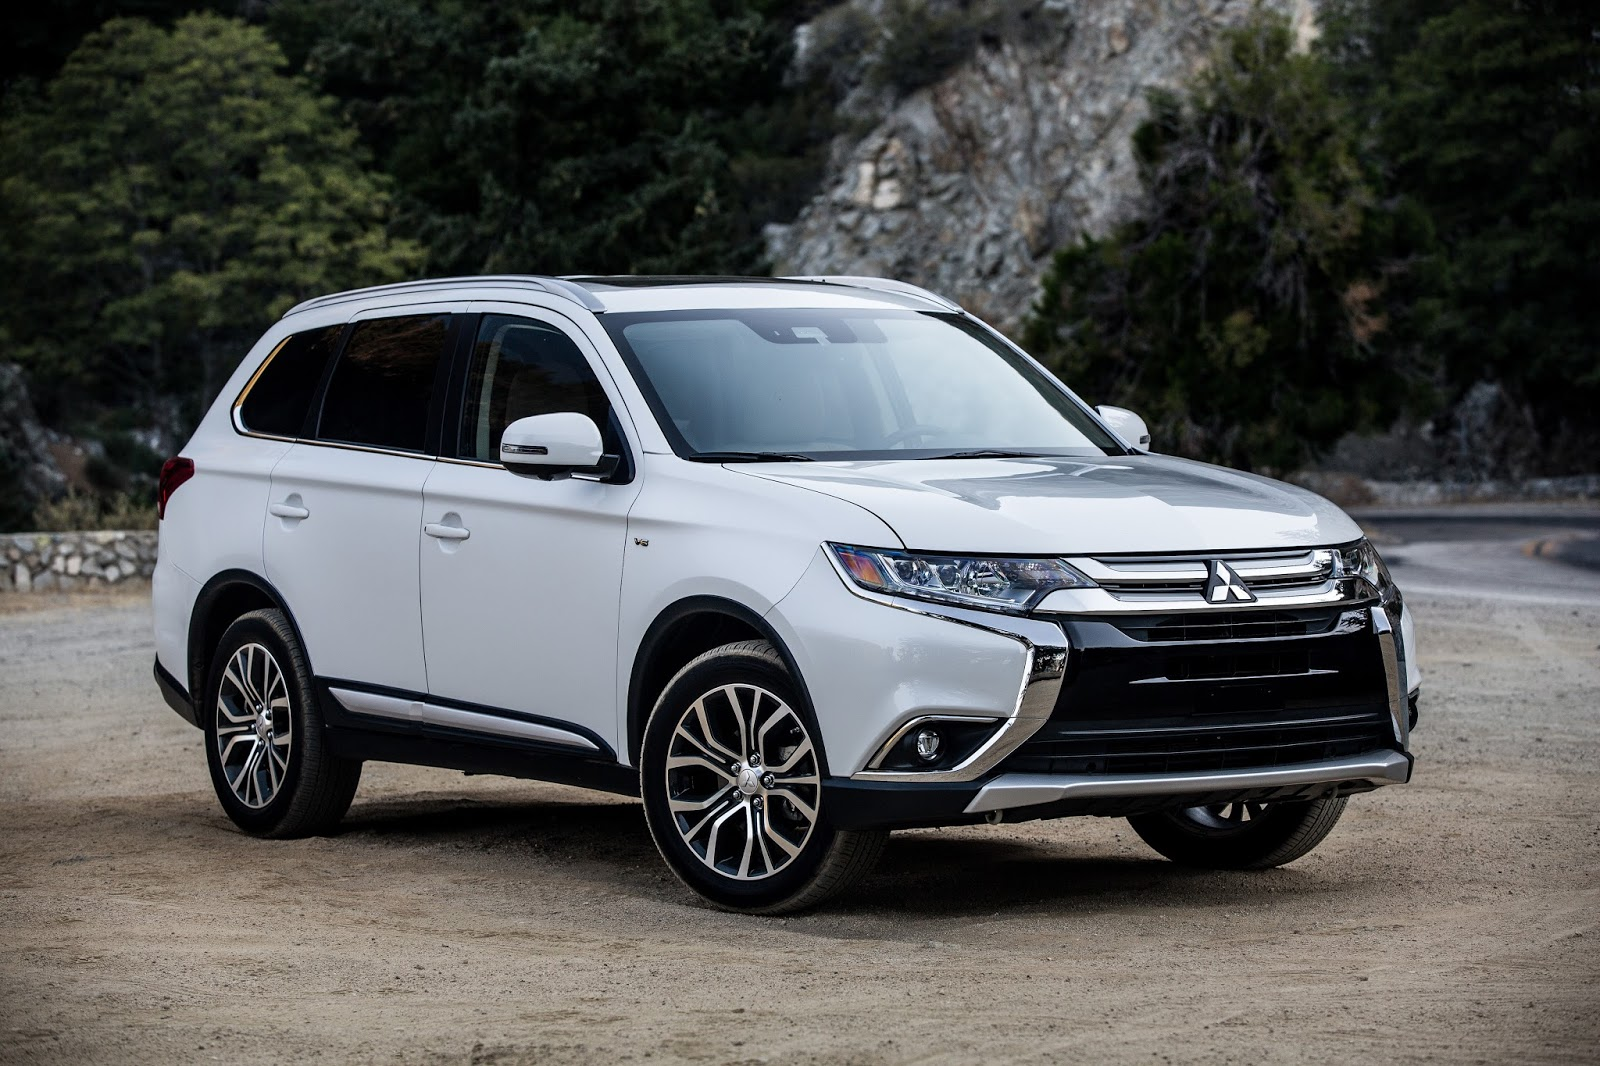 More MPG, Less Money: The 2018 Mitsubishi Outlander 2.4 SEL S-AWC